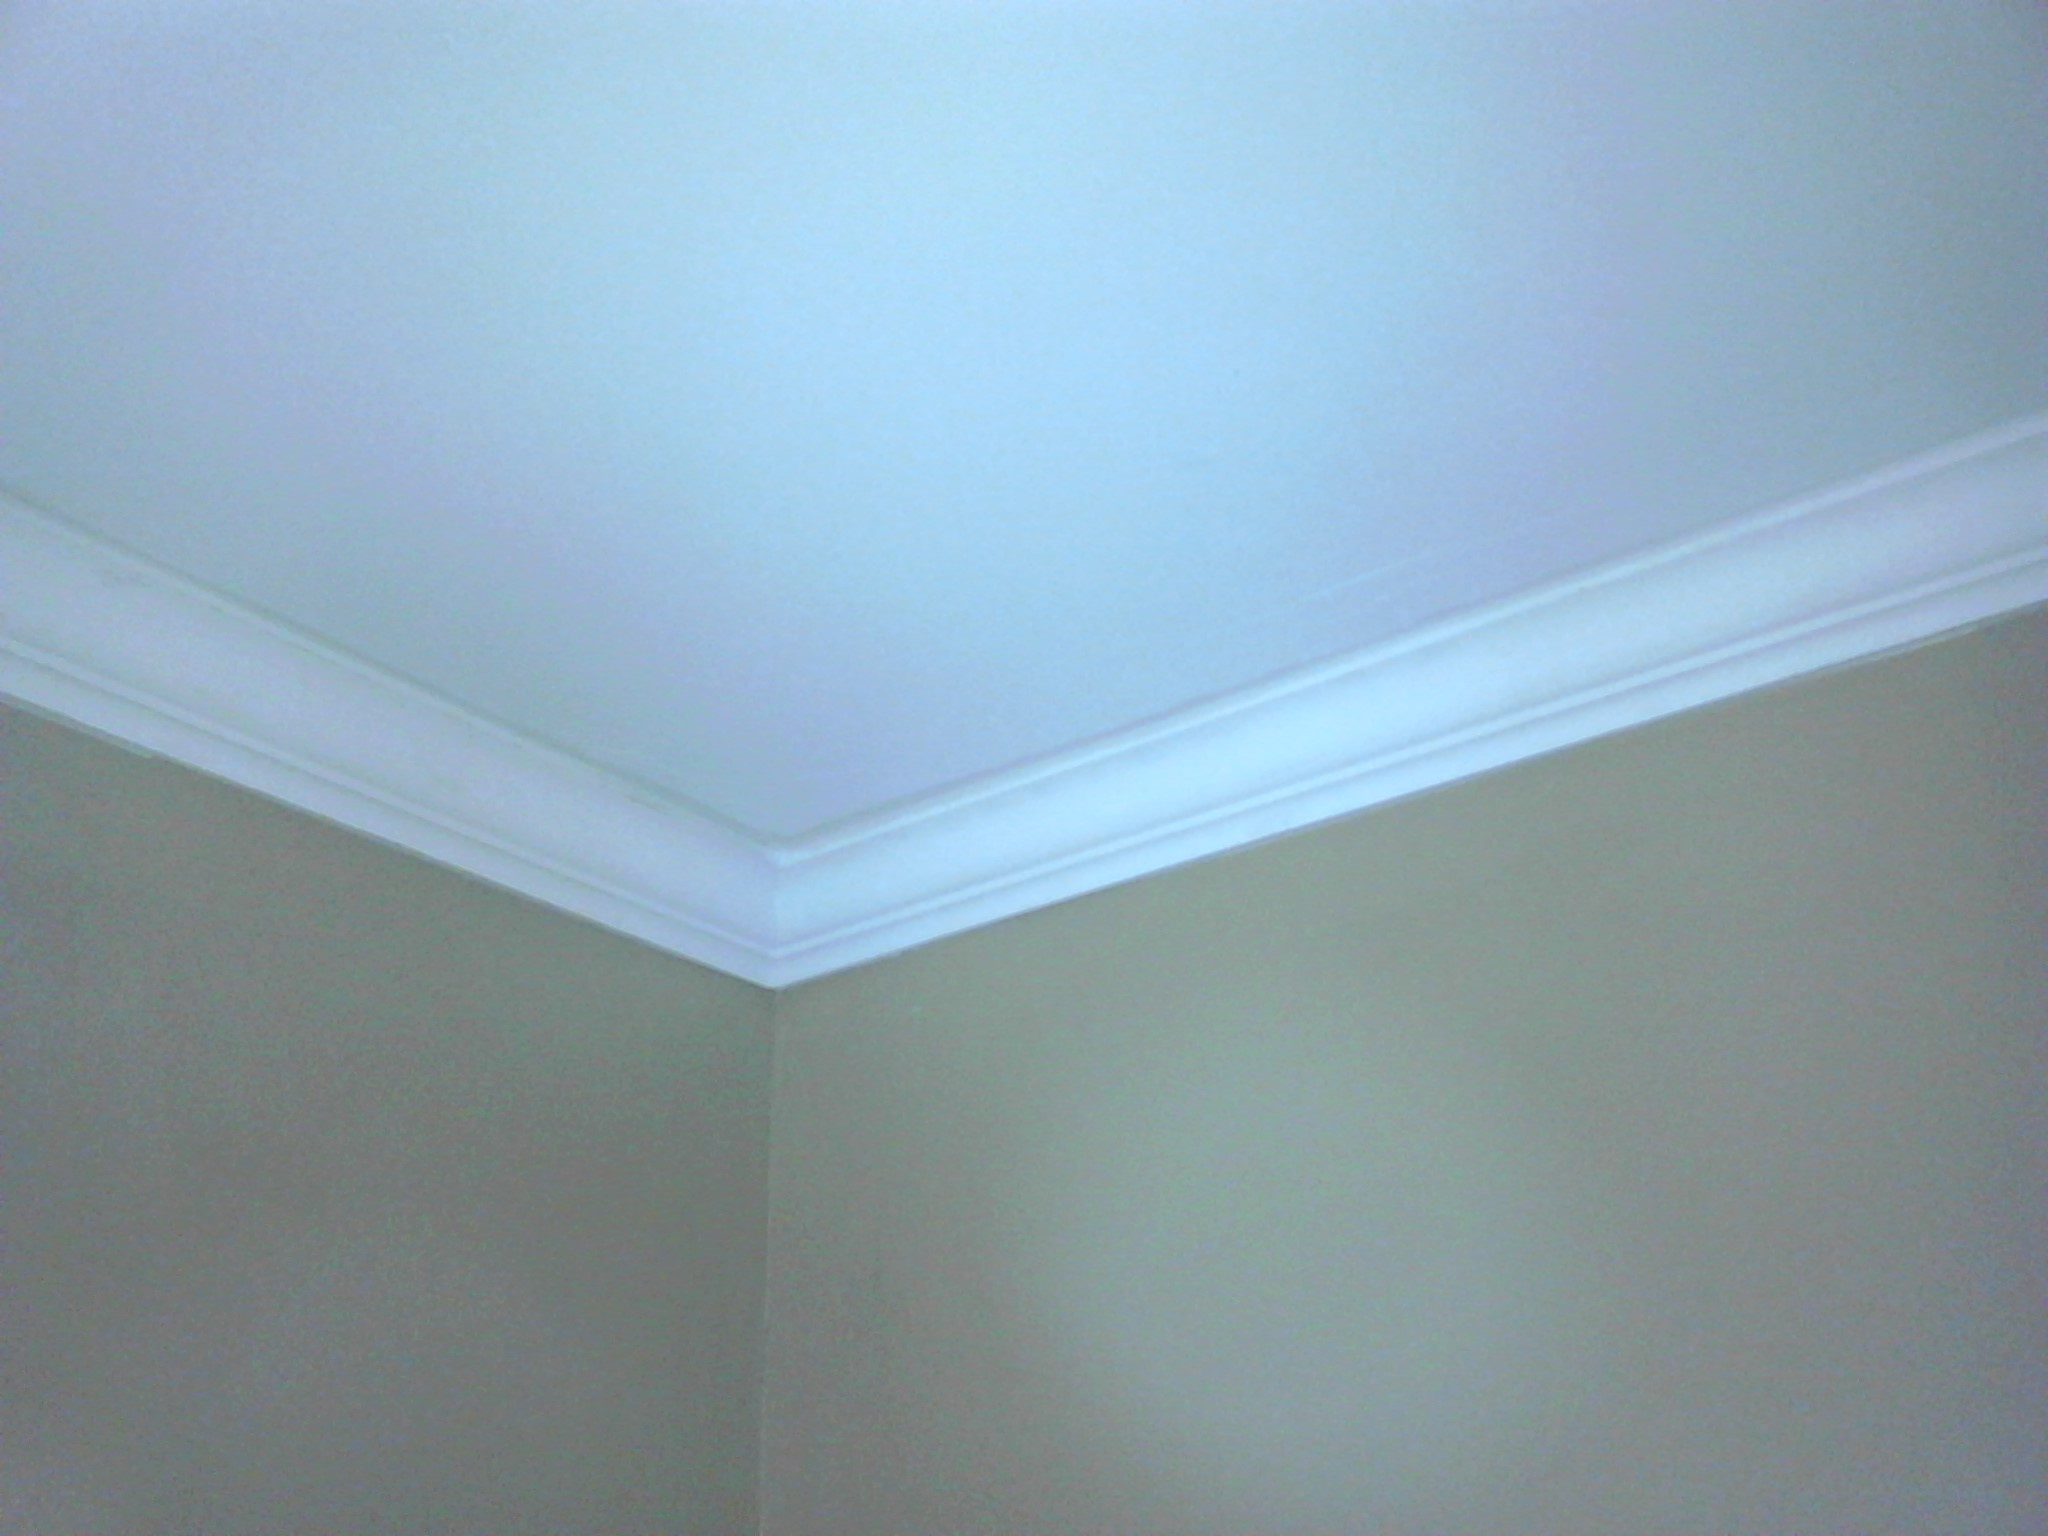 Living Room Crown Molding.jpg